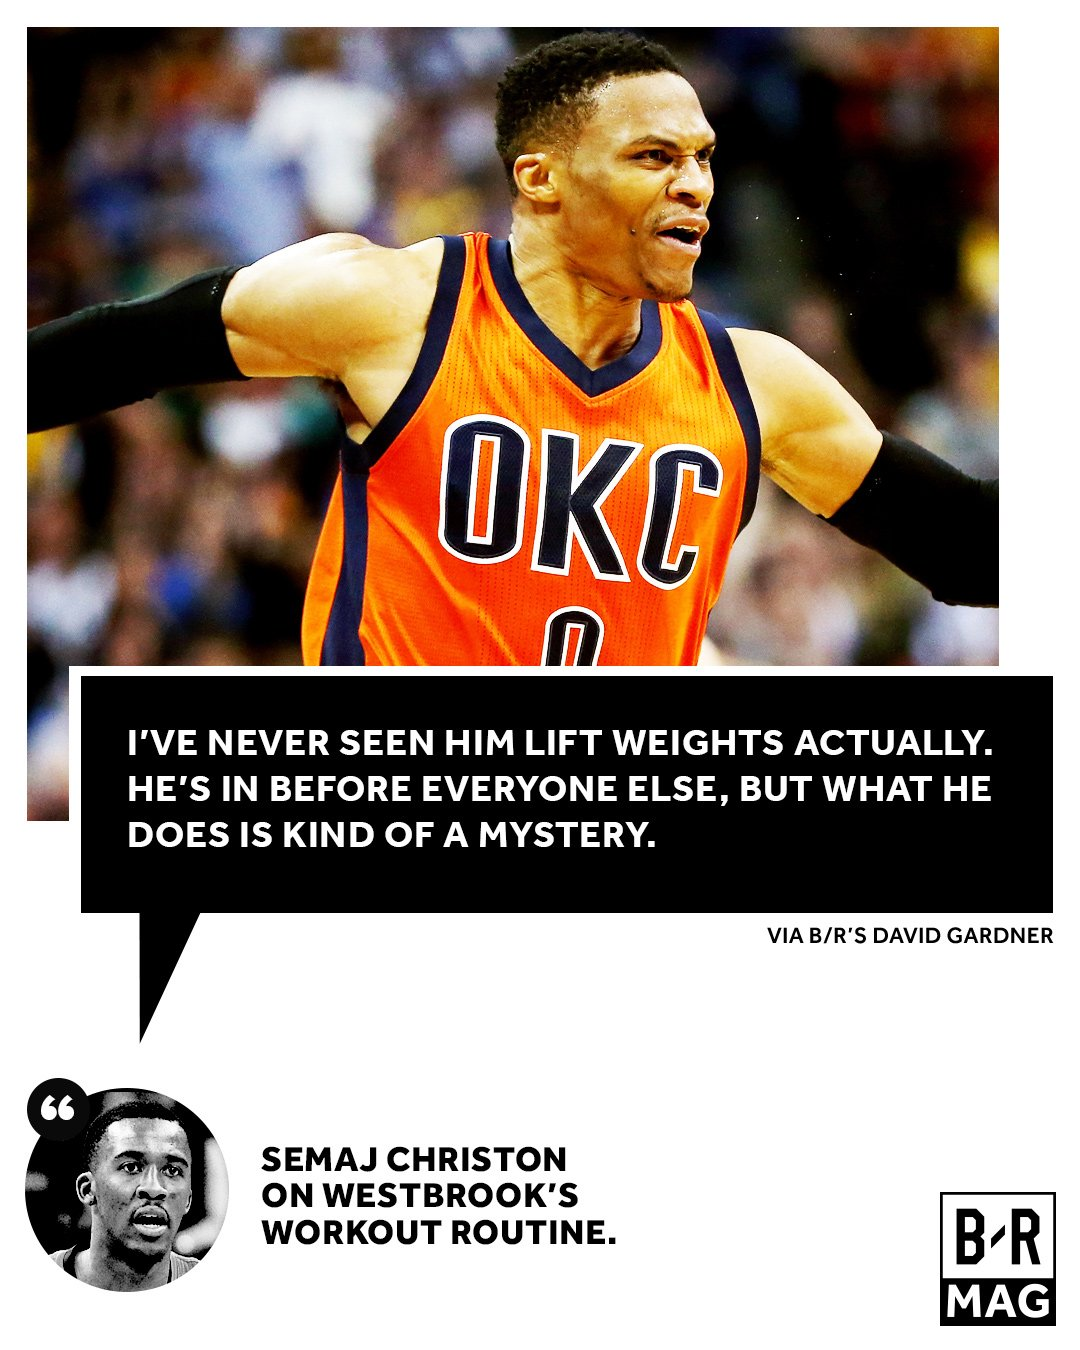 Not even Westbrook's teammates can fully understand the secret behind his physique #BRmag https://t.co/m2dpzdS5dk https://t.co/cfnsqyiKL4